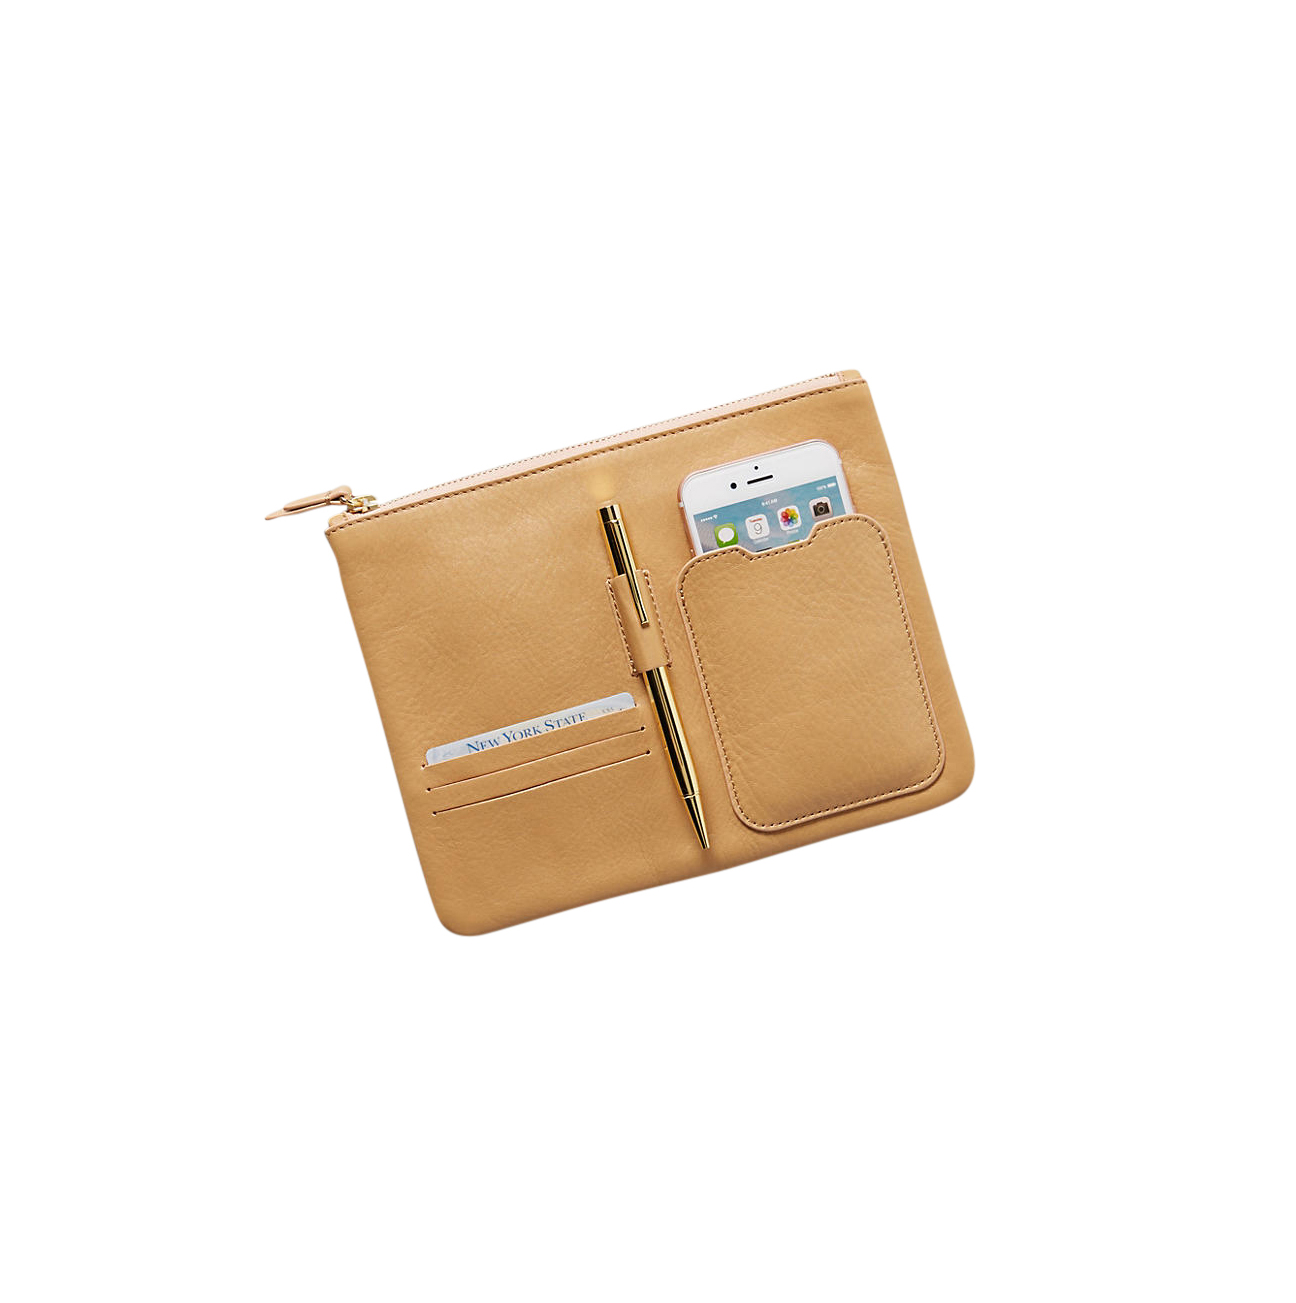 Gifts for mother in law real simple ready for anything pouch negle Image collections